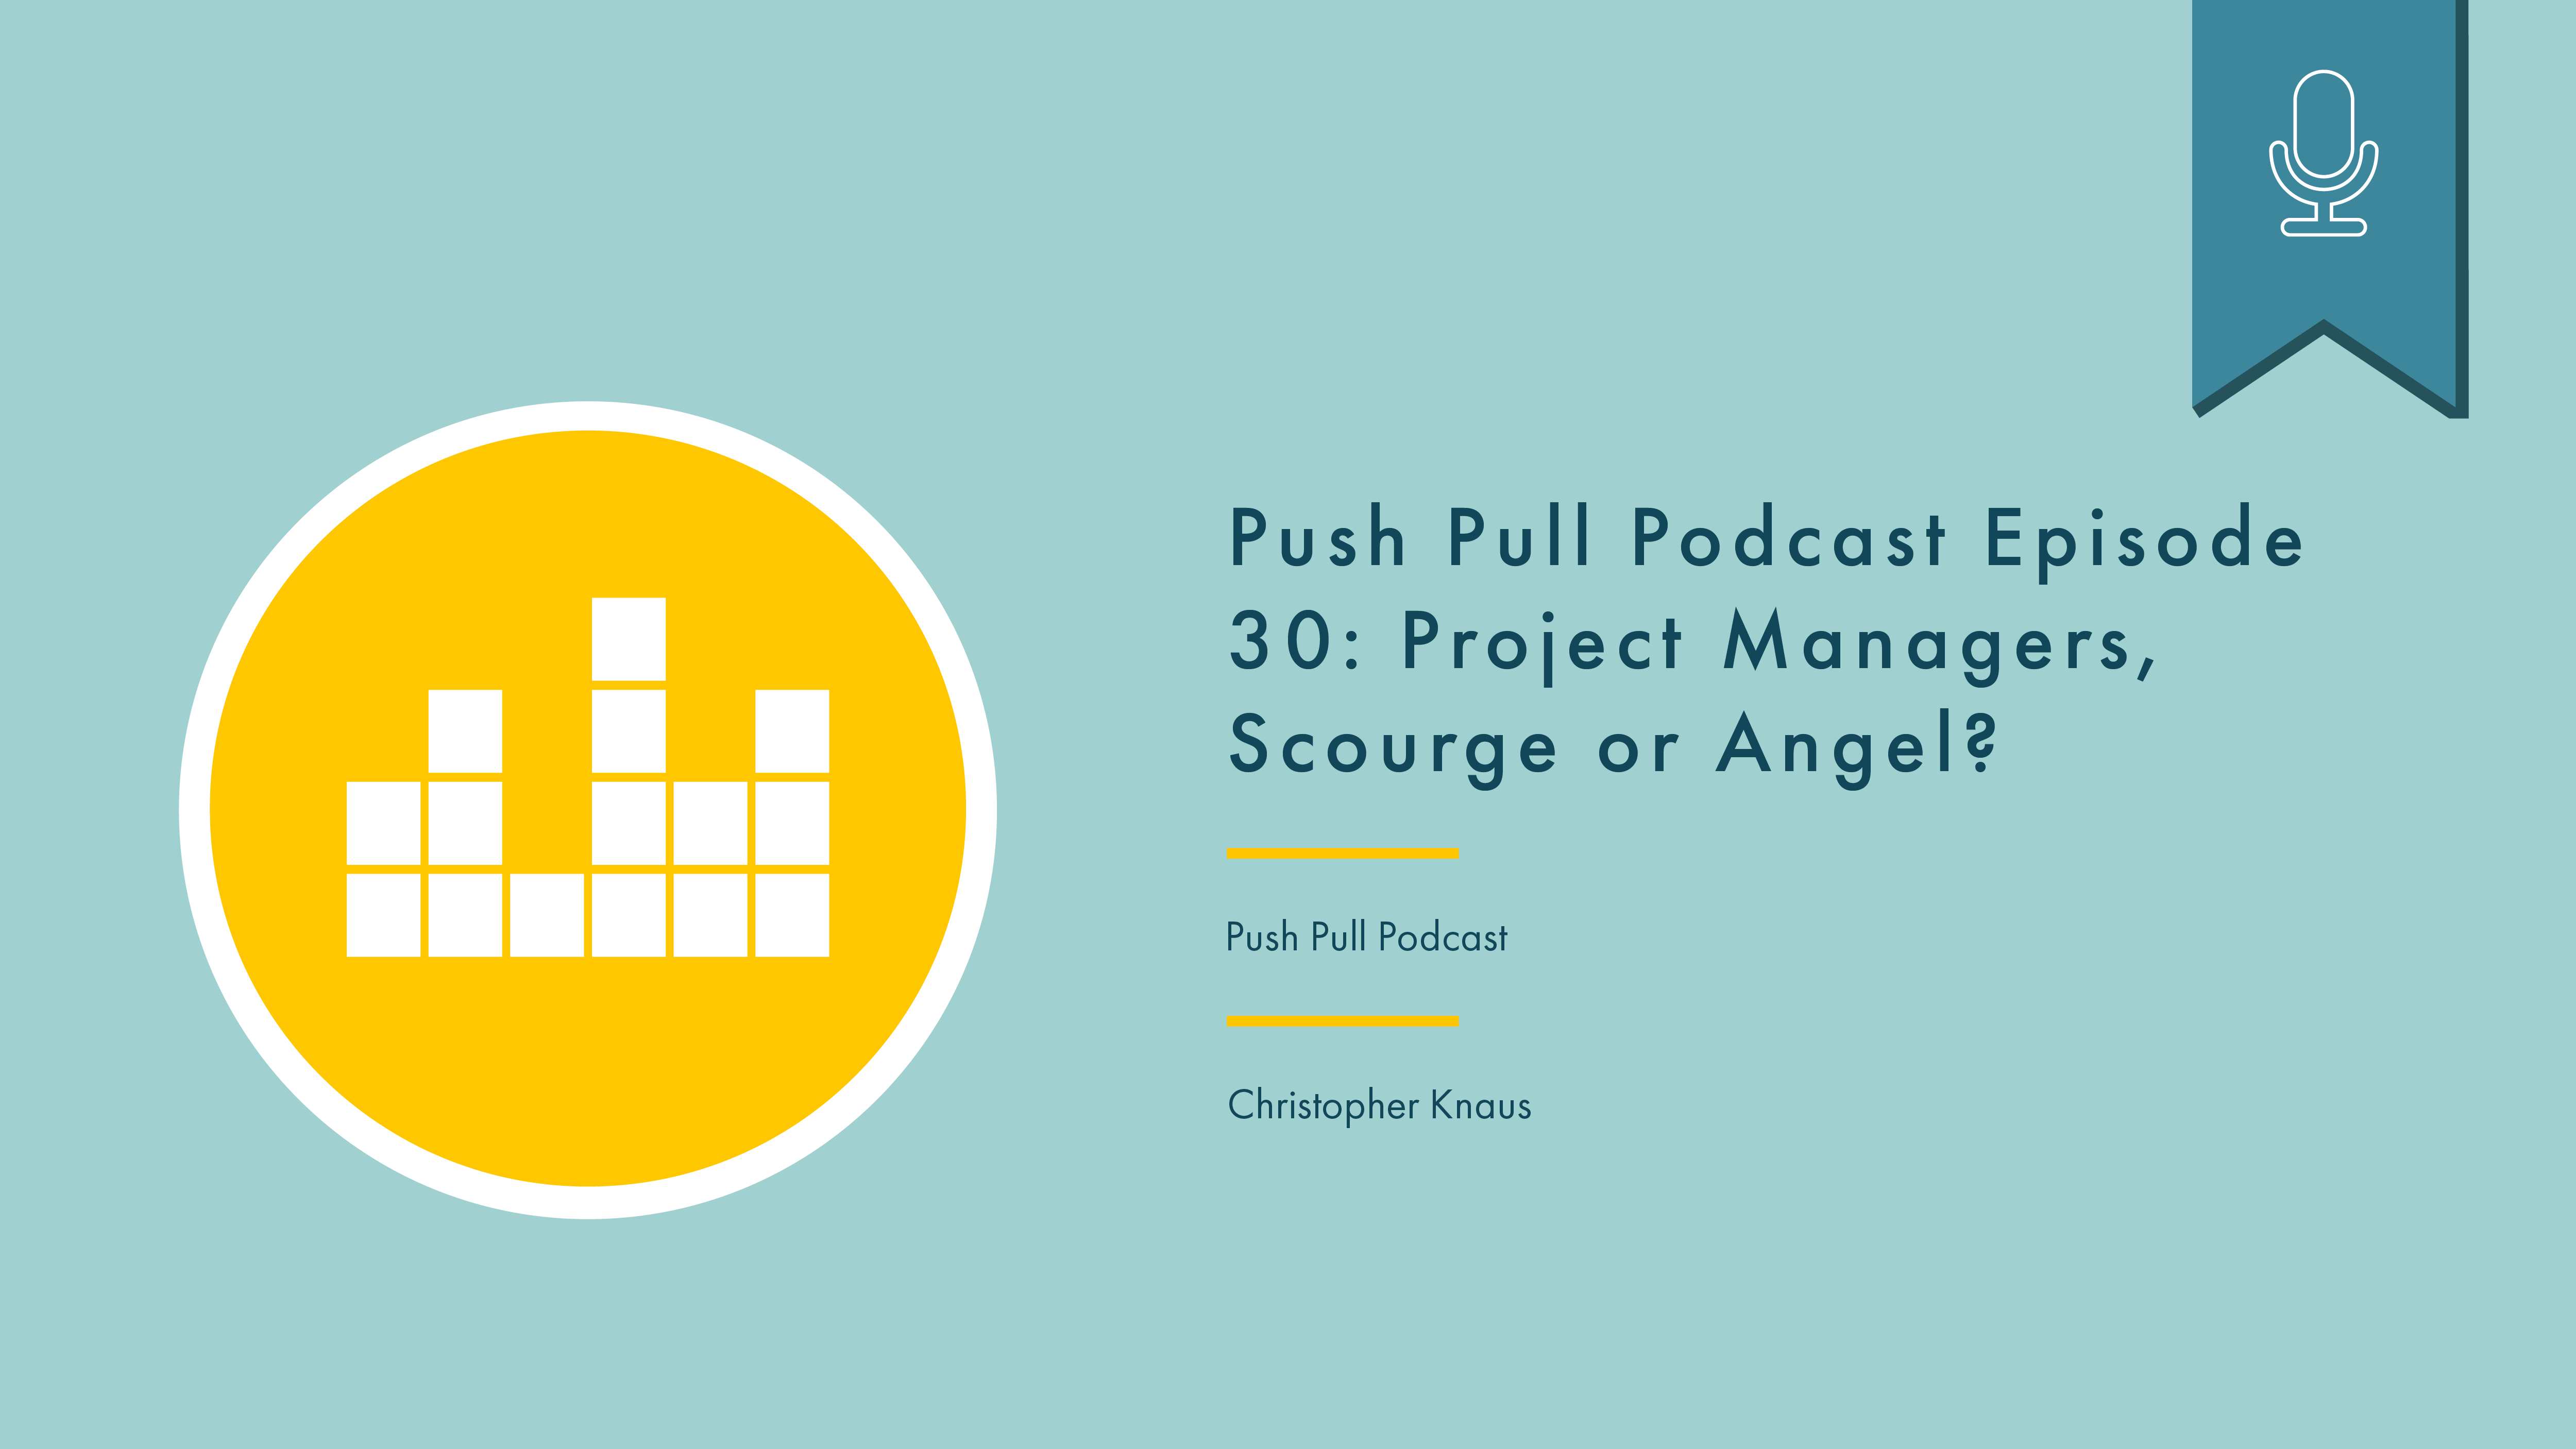 Header image showing podcast episode title, podcast name, and interviewee